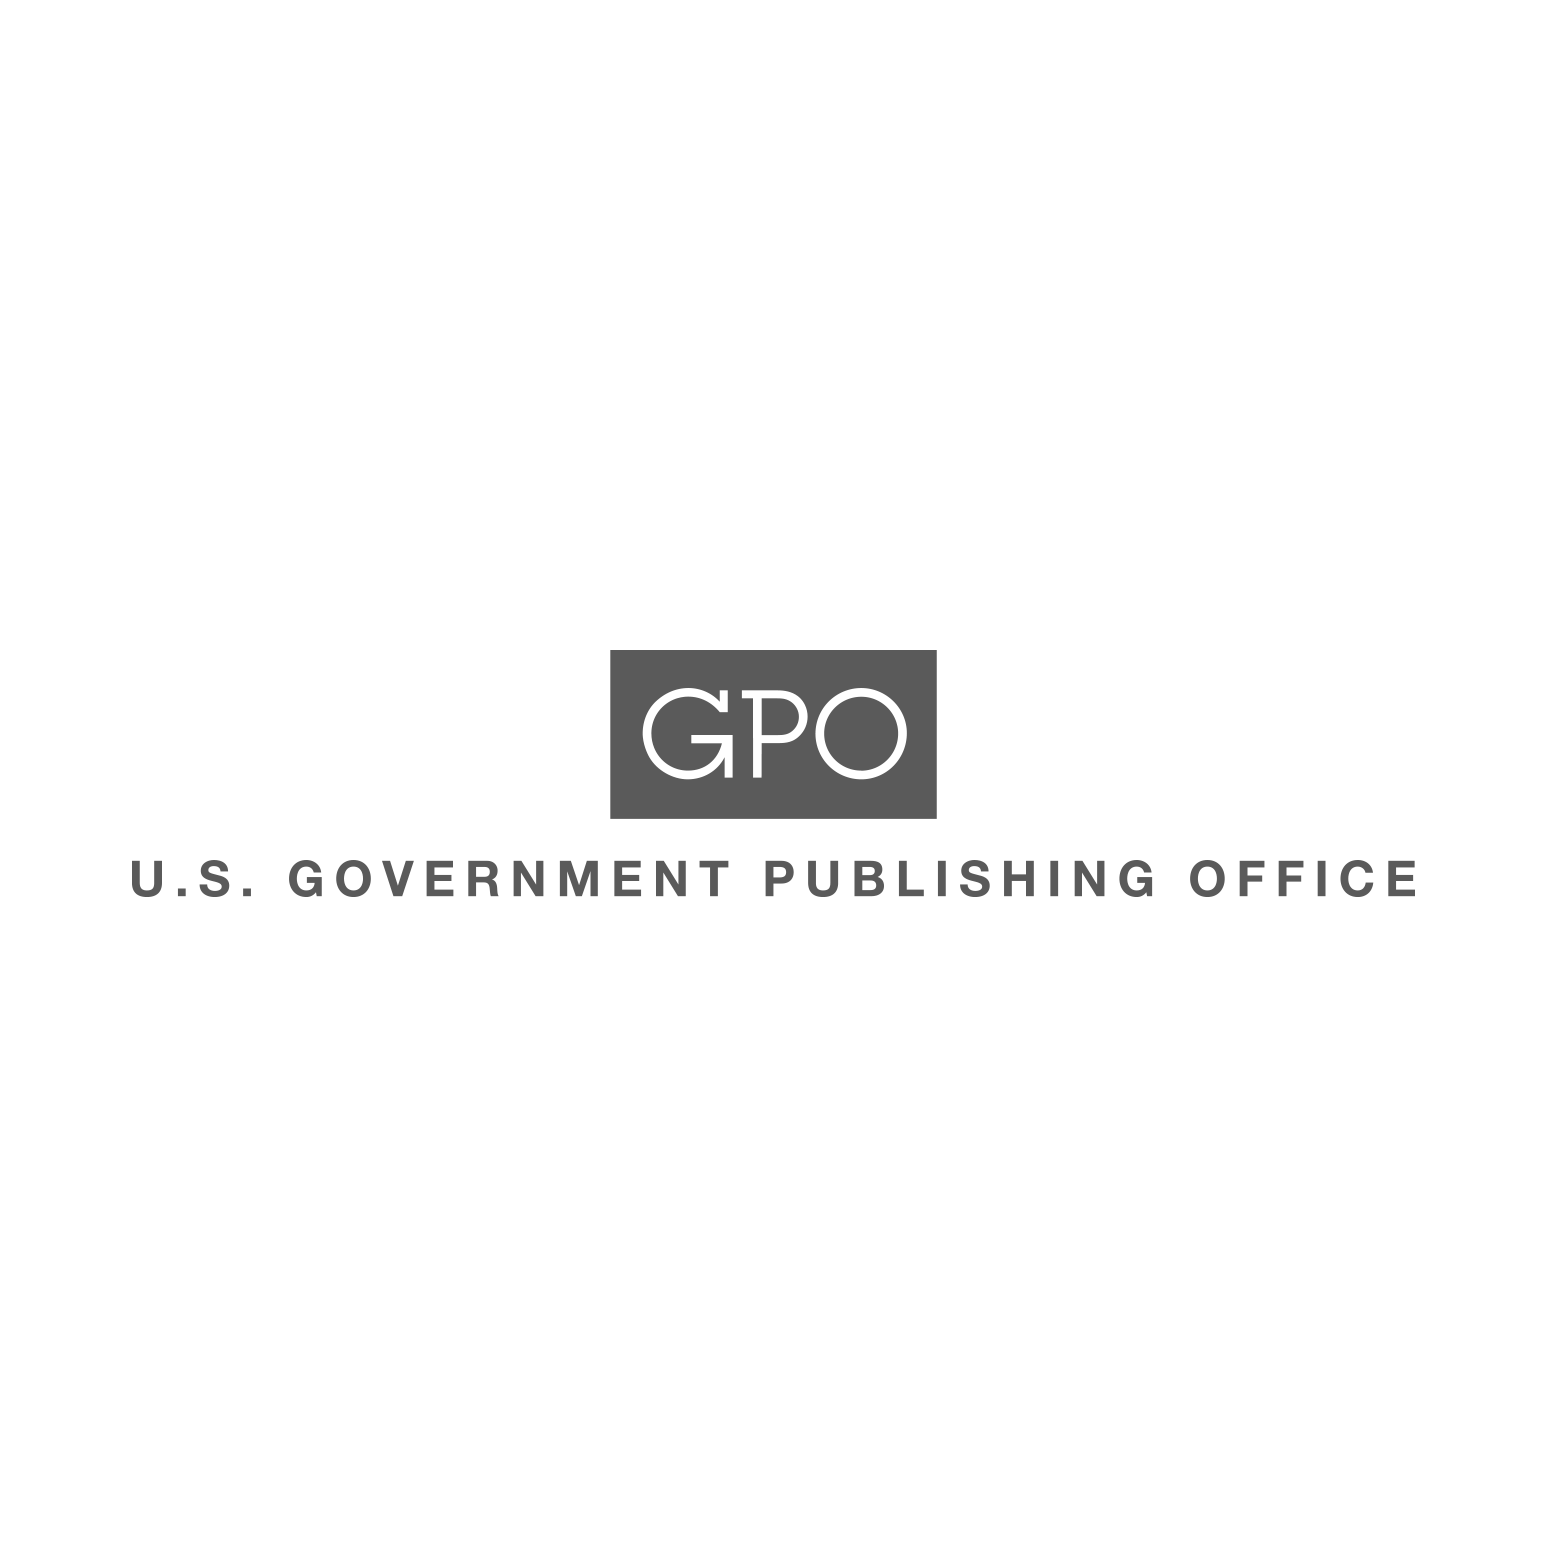 U.S. Government Publishing Office